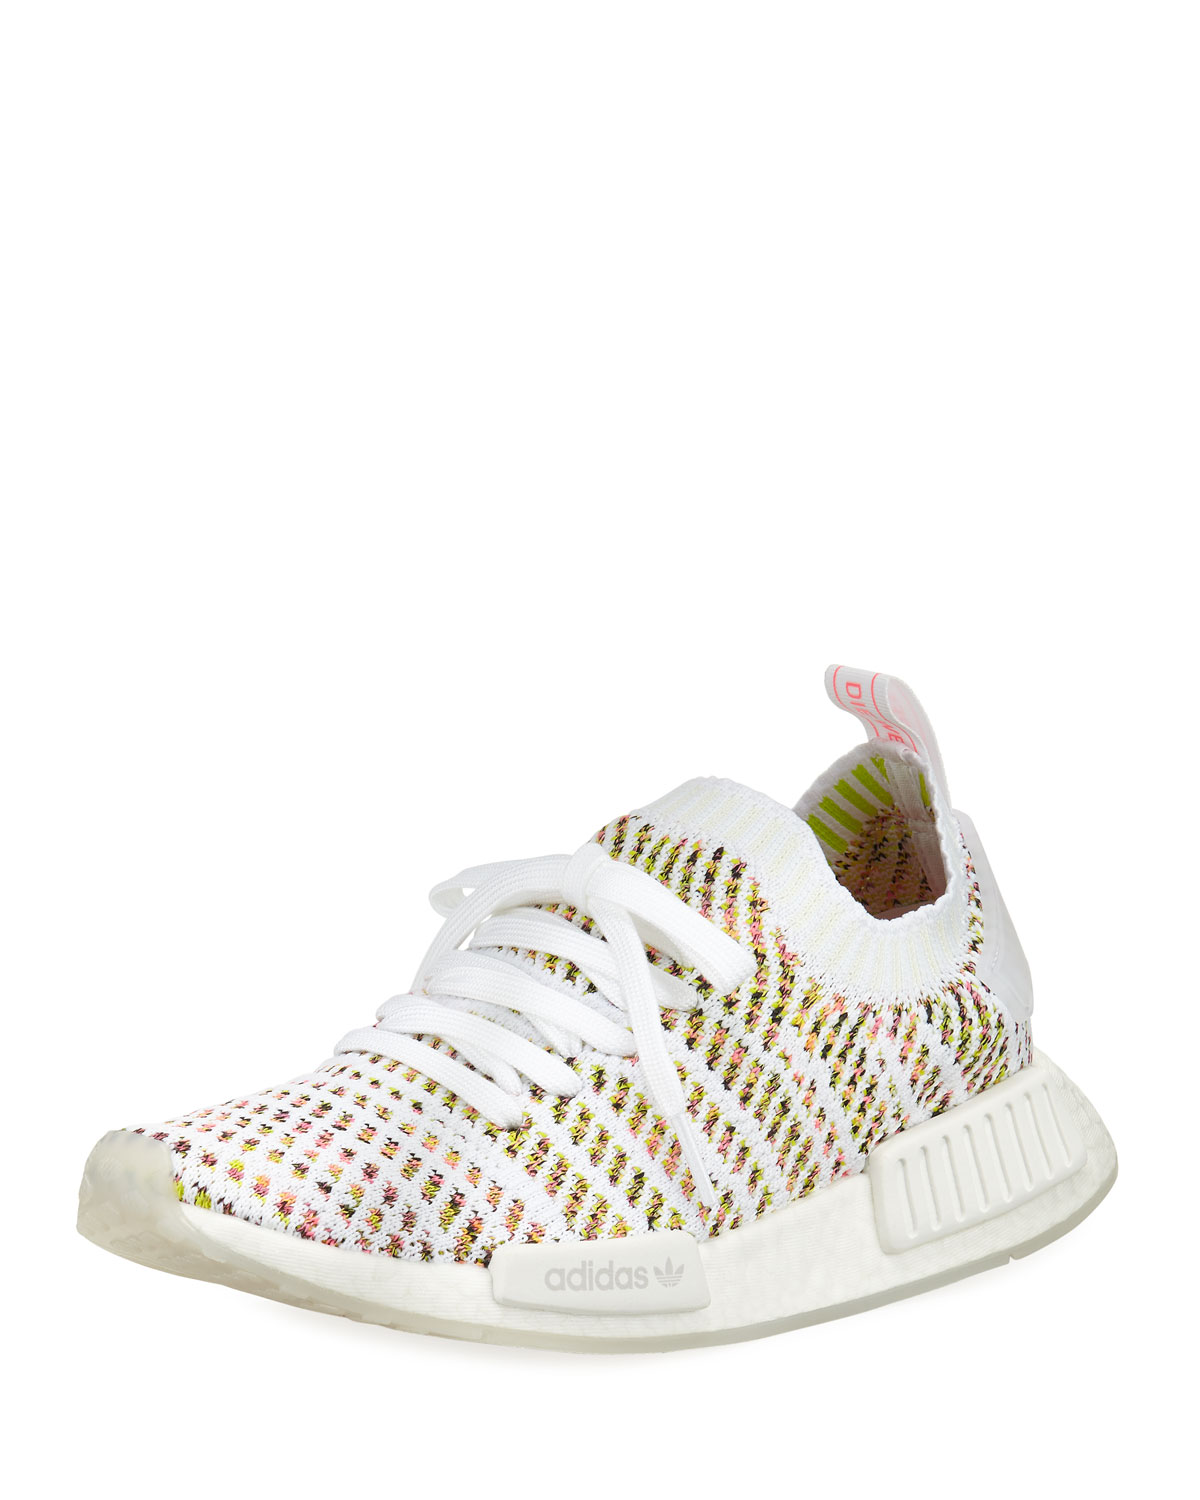 new arrival 06b7c 774c7 NMD R1 Primeknit Sneakers, White/Yellow/Pink